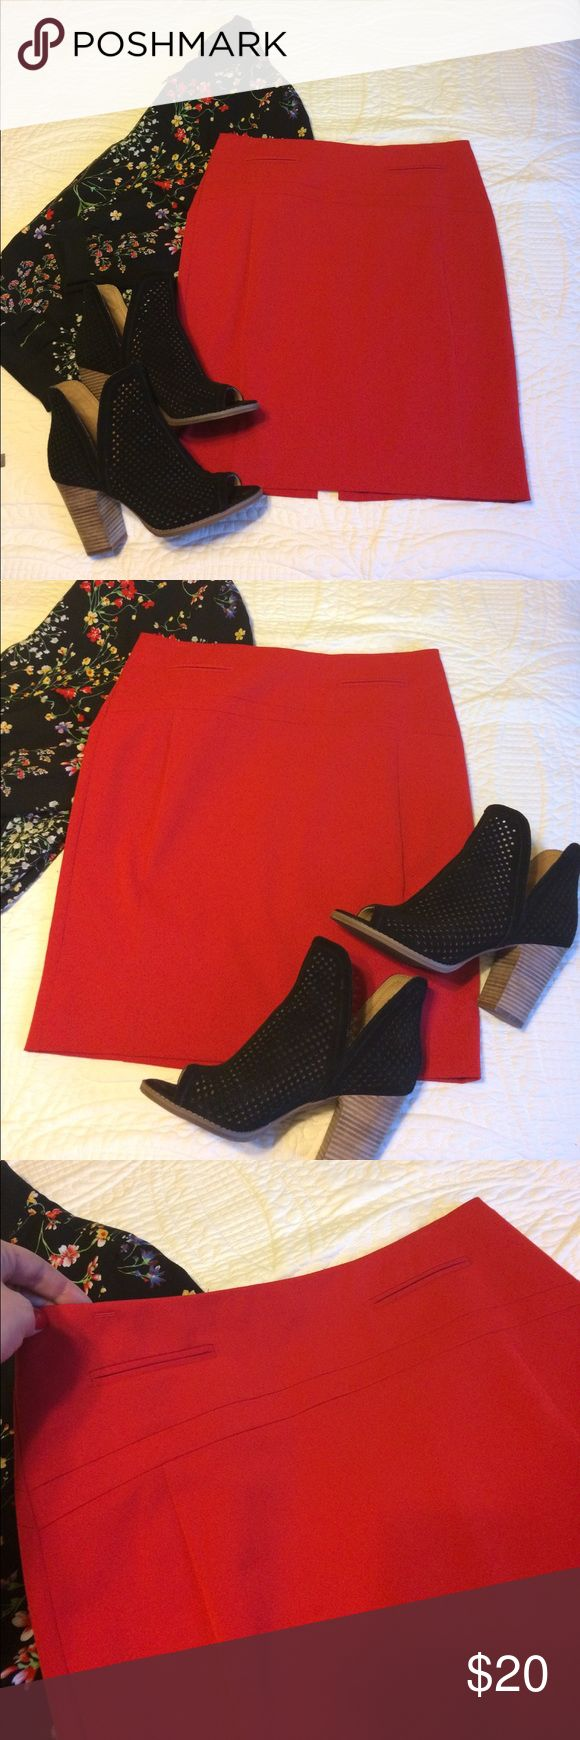 Red pencil skirt Beautiful cherry red pencil skirt. Wore one time for college graduation. So classy and cute! Express Skirts Pencil